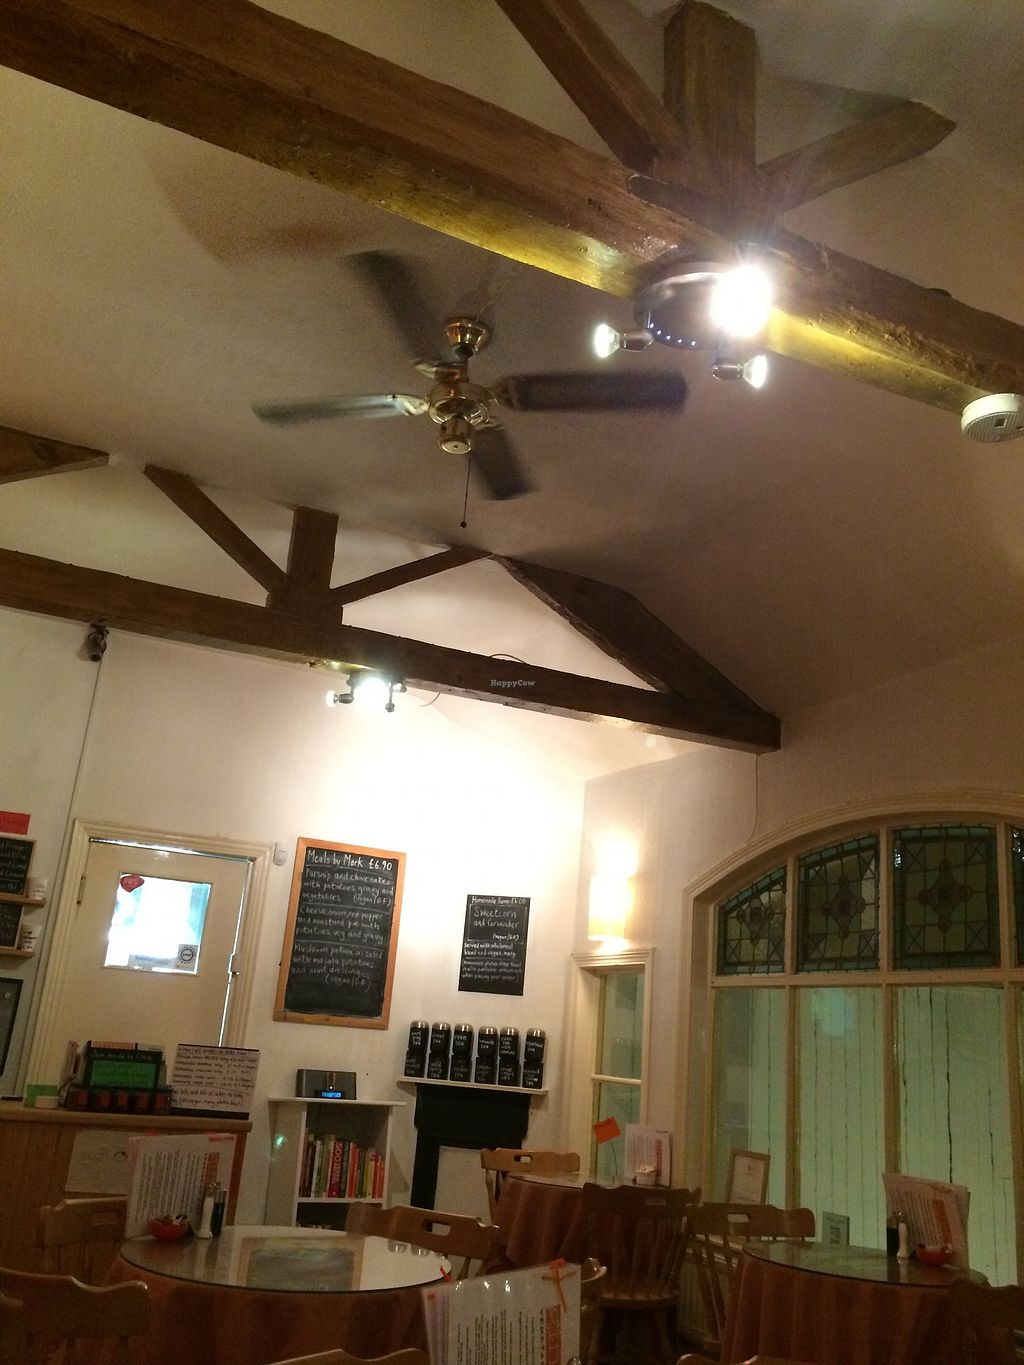 """Photo of Ginger Vegetarian Cafe  by <a href=""""/members/profile/Hoggy"""">Hoggy</a> <br/>Inside the Ginger Vegetarian Cafe <br/> July 23, 2017  - <a href='/contact/abuse/image/16682/283770'>Report</a>"""